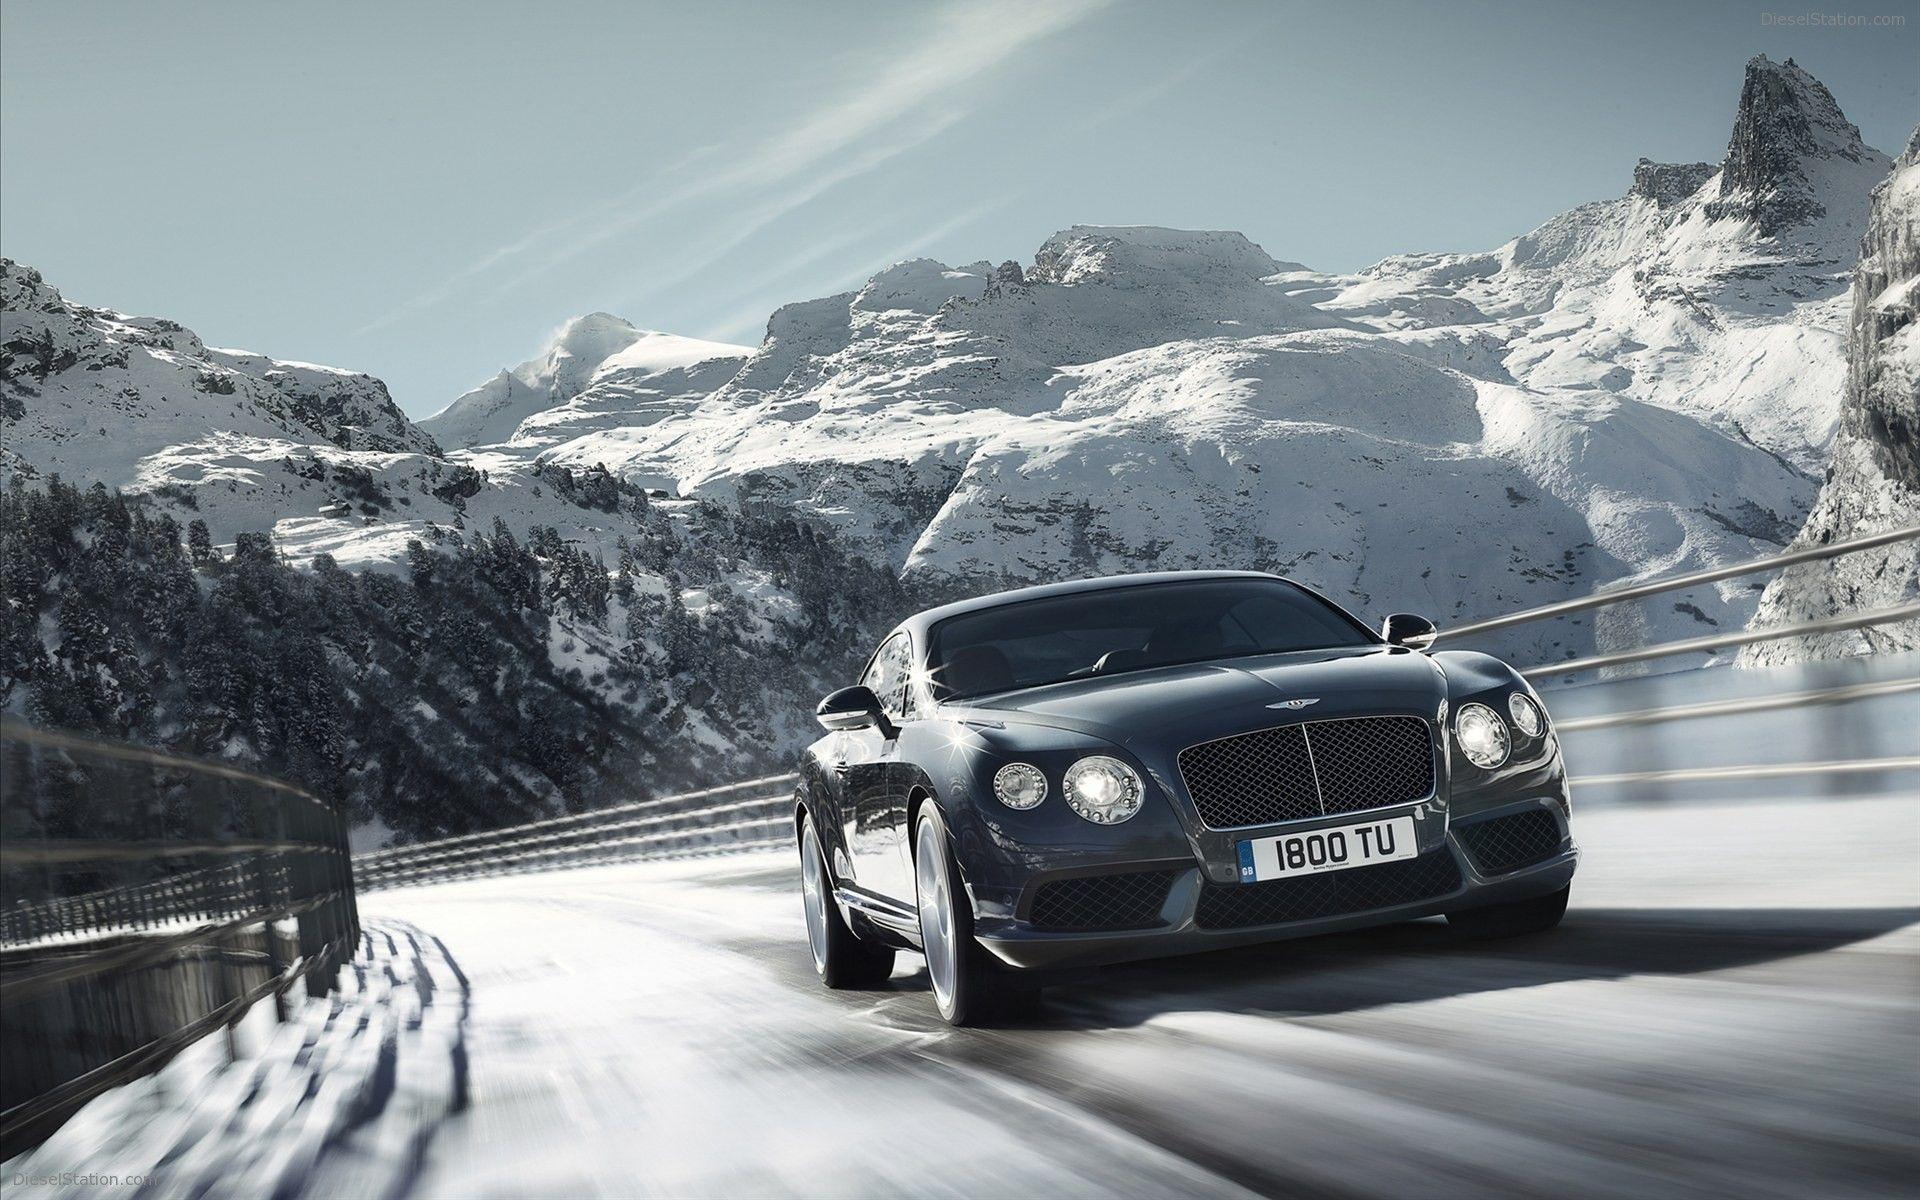 2012 Bentley Continental GT Wallpaper | HD Car Wallpapers